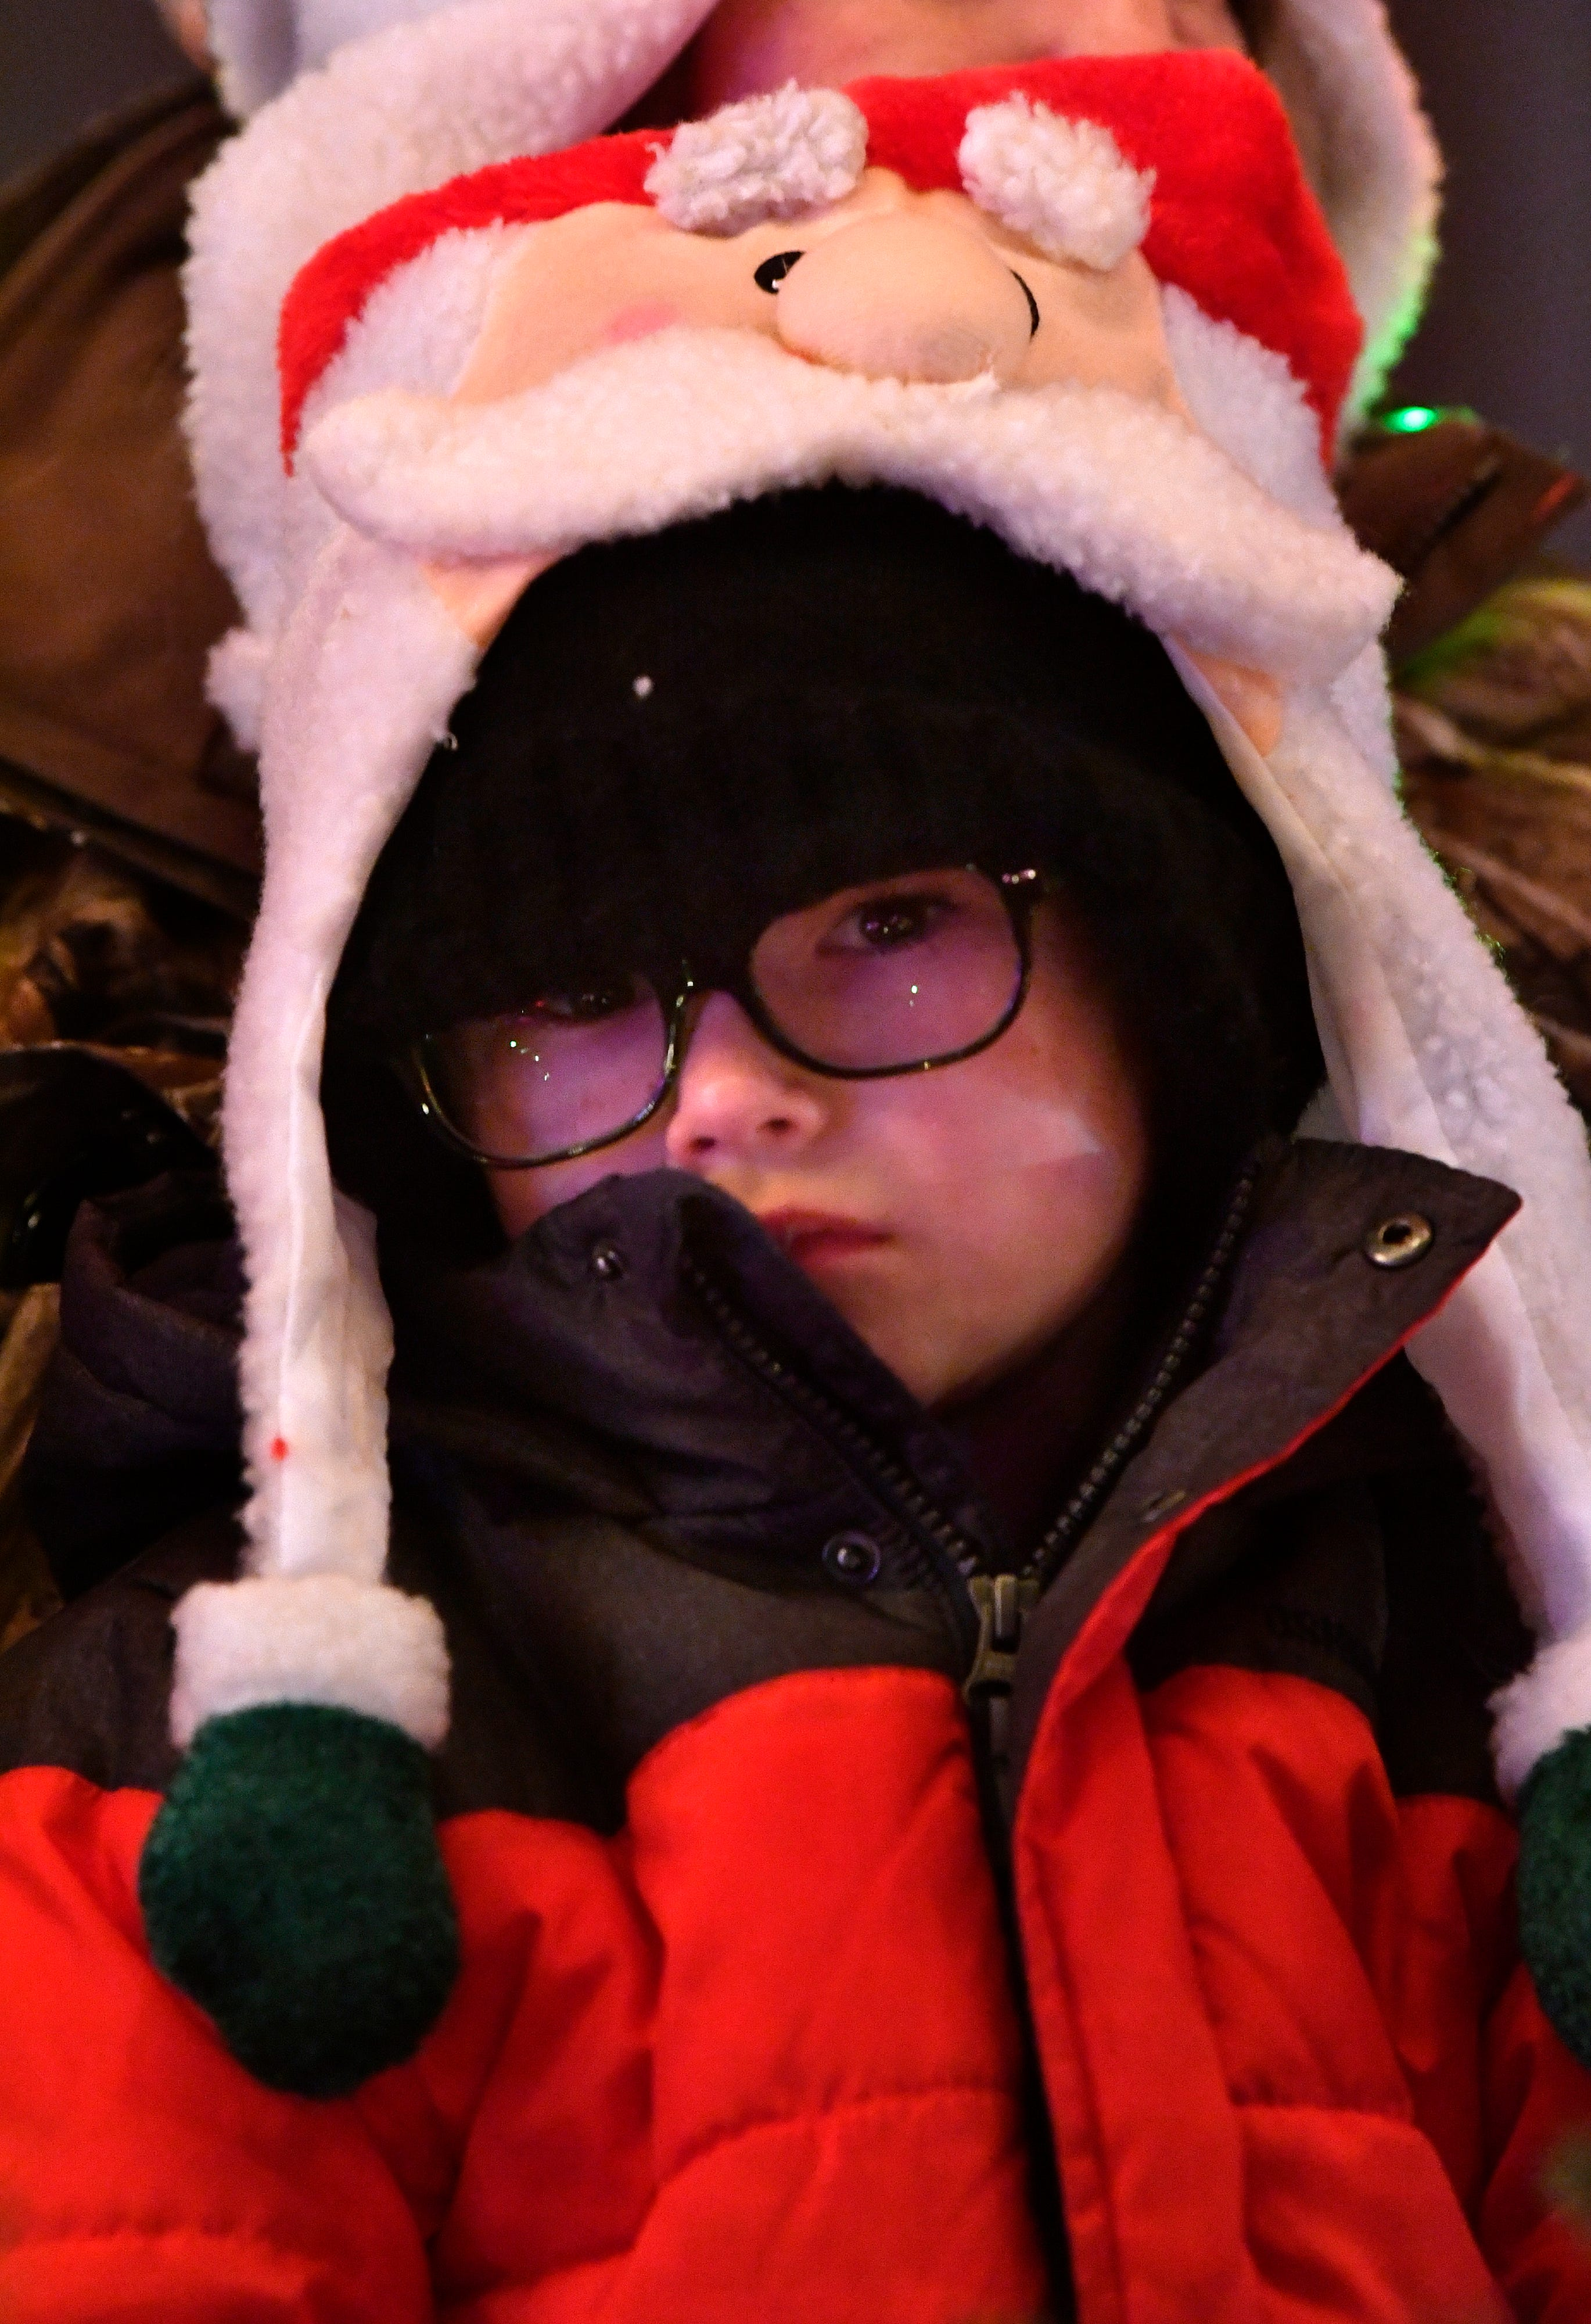 Carson Culp, 5, waits for the parade to start while sitting on the lap of his grandmother Jill Winters Tuesday. This was the 30th year for the City Sidewalks Christmas Lights Parade.